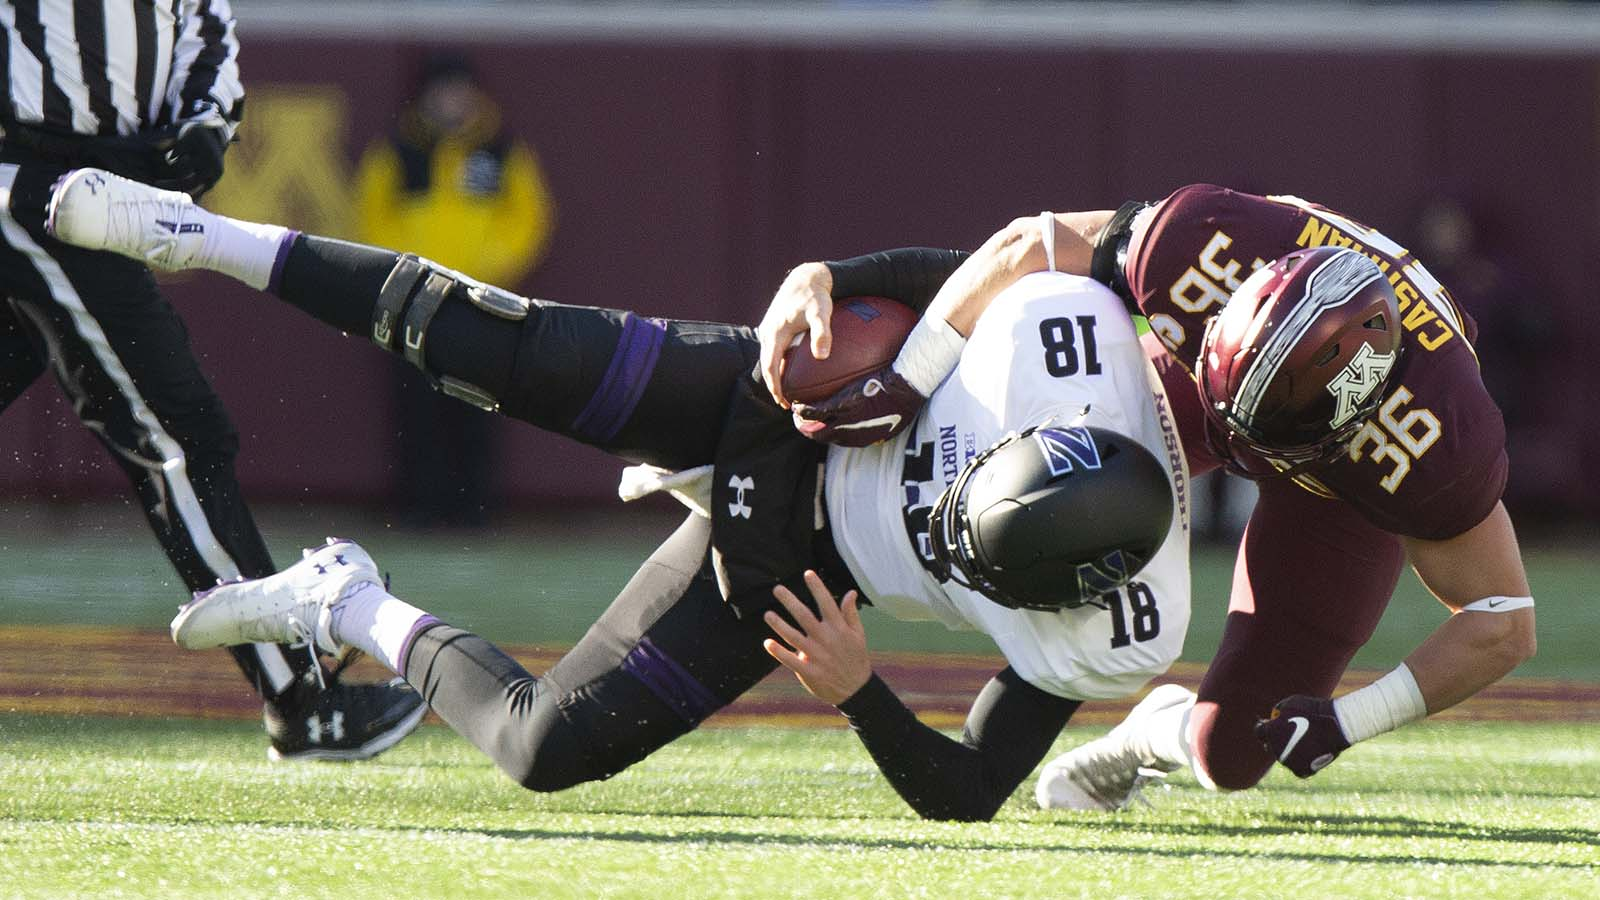 Northwestern quarterback Clayton Thorson is sacked by Minnesota's Blake Cashman during the first half of an NCAA college football game Saturday, Nov. 17, 2018, in Minneapolis. (AP Photo/Stacy Bengs)